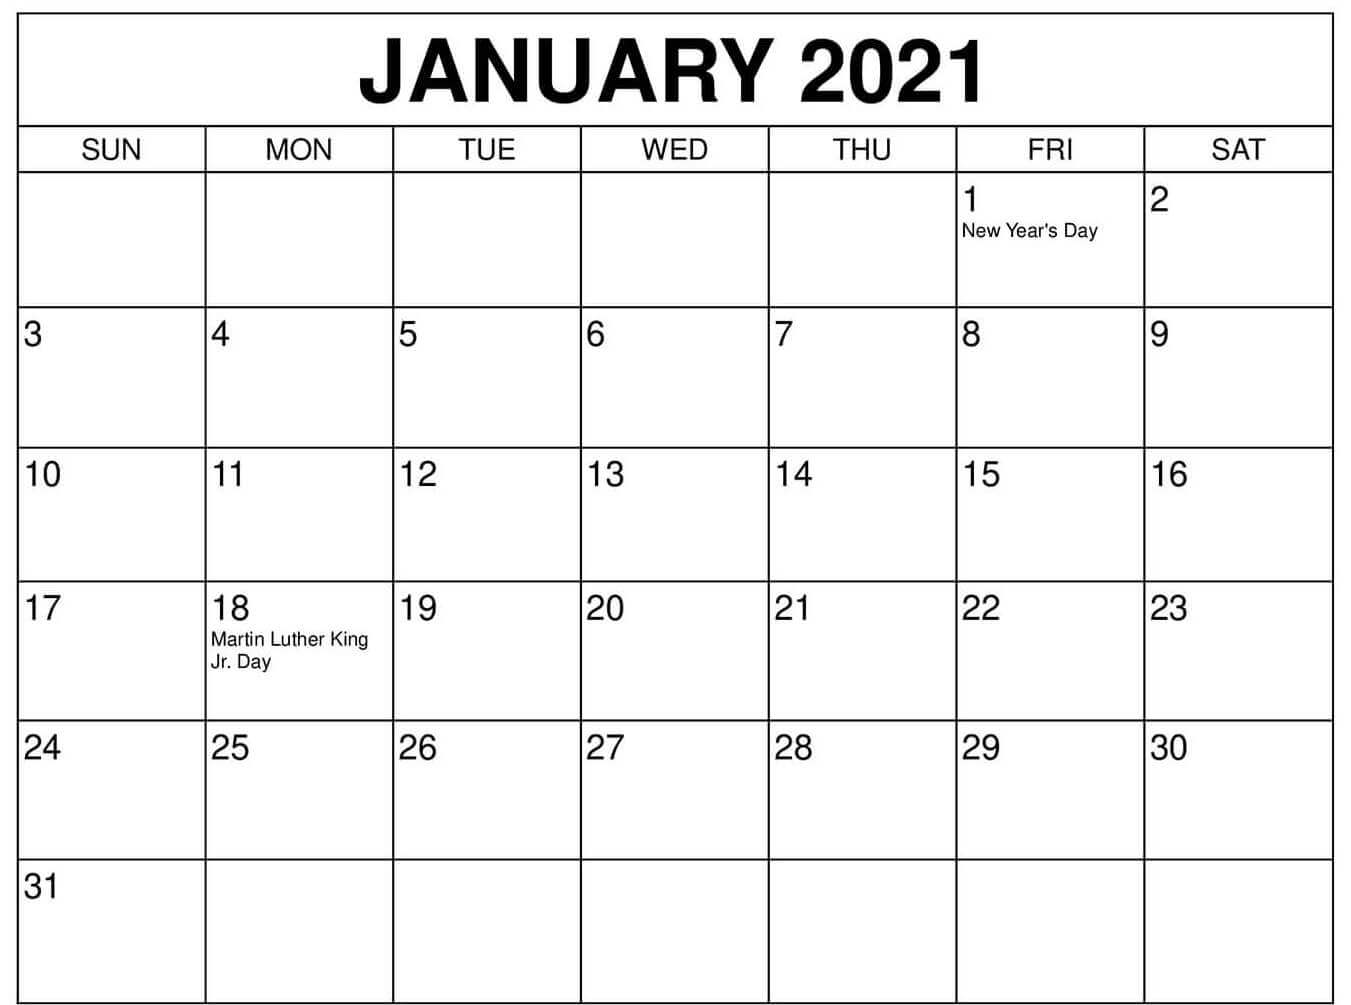 January 2021 Federal Holidays Calendar